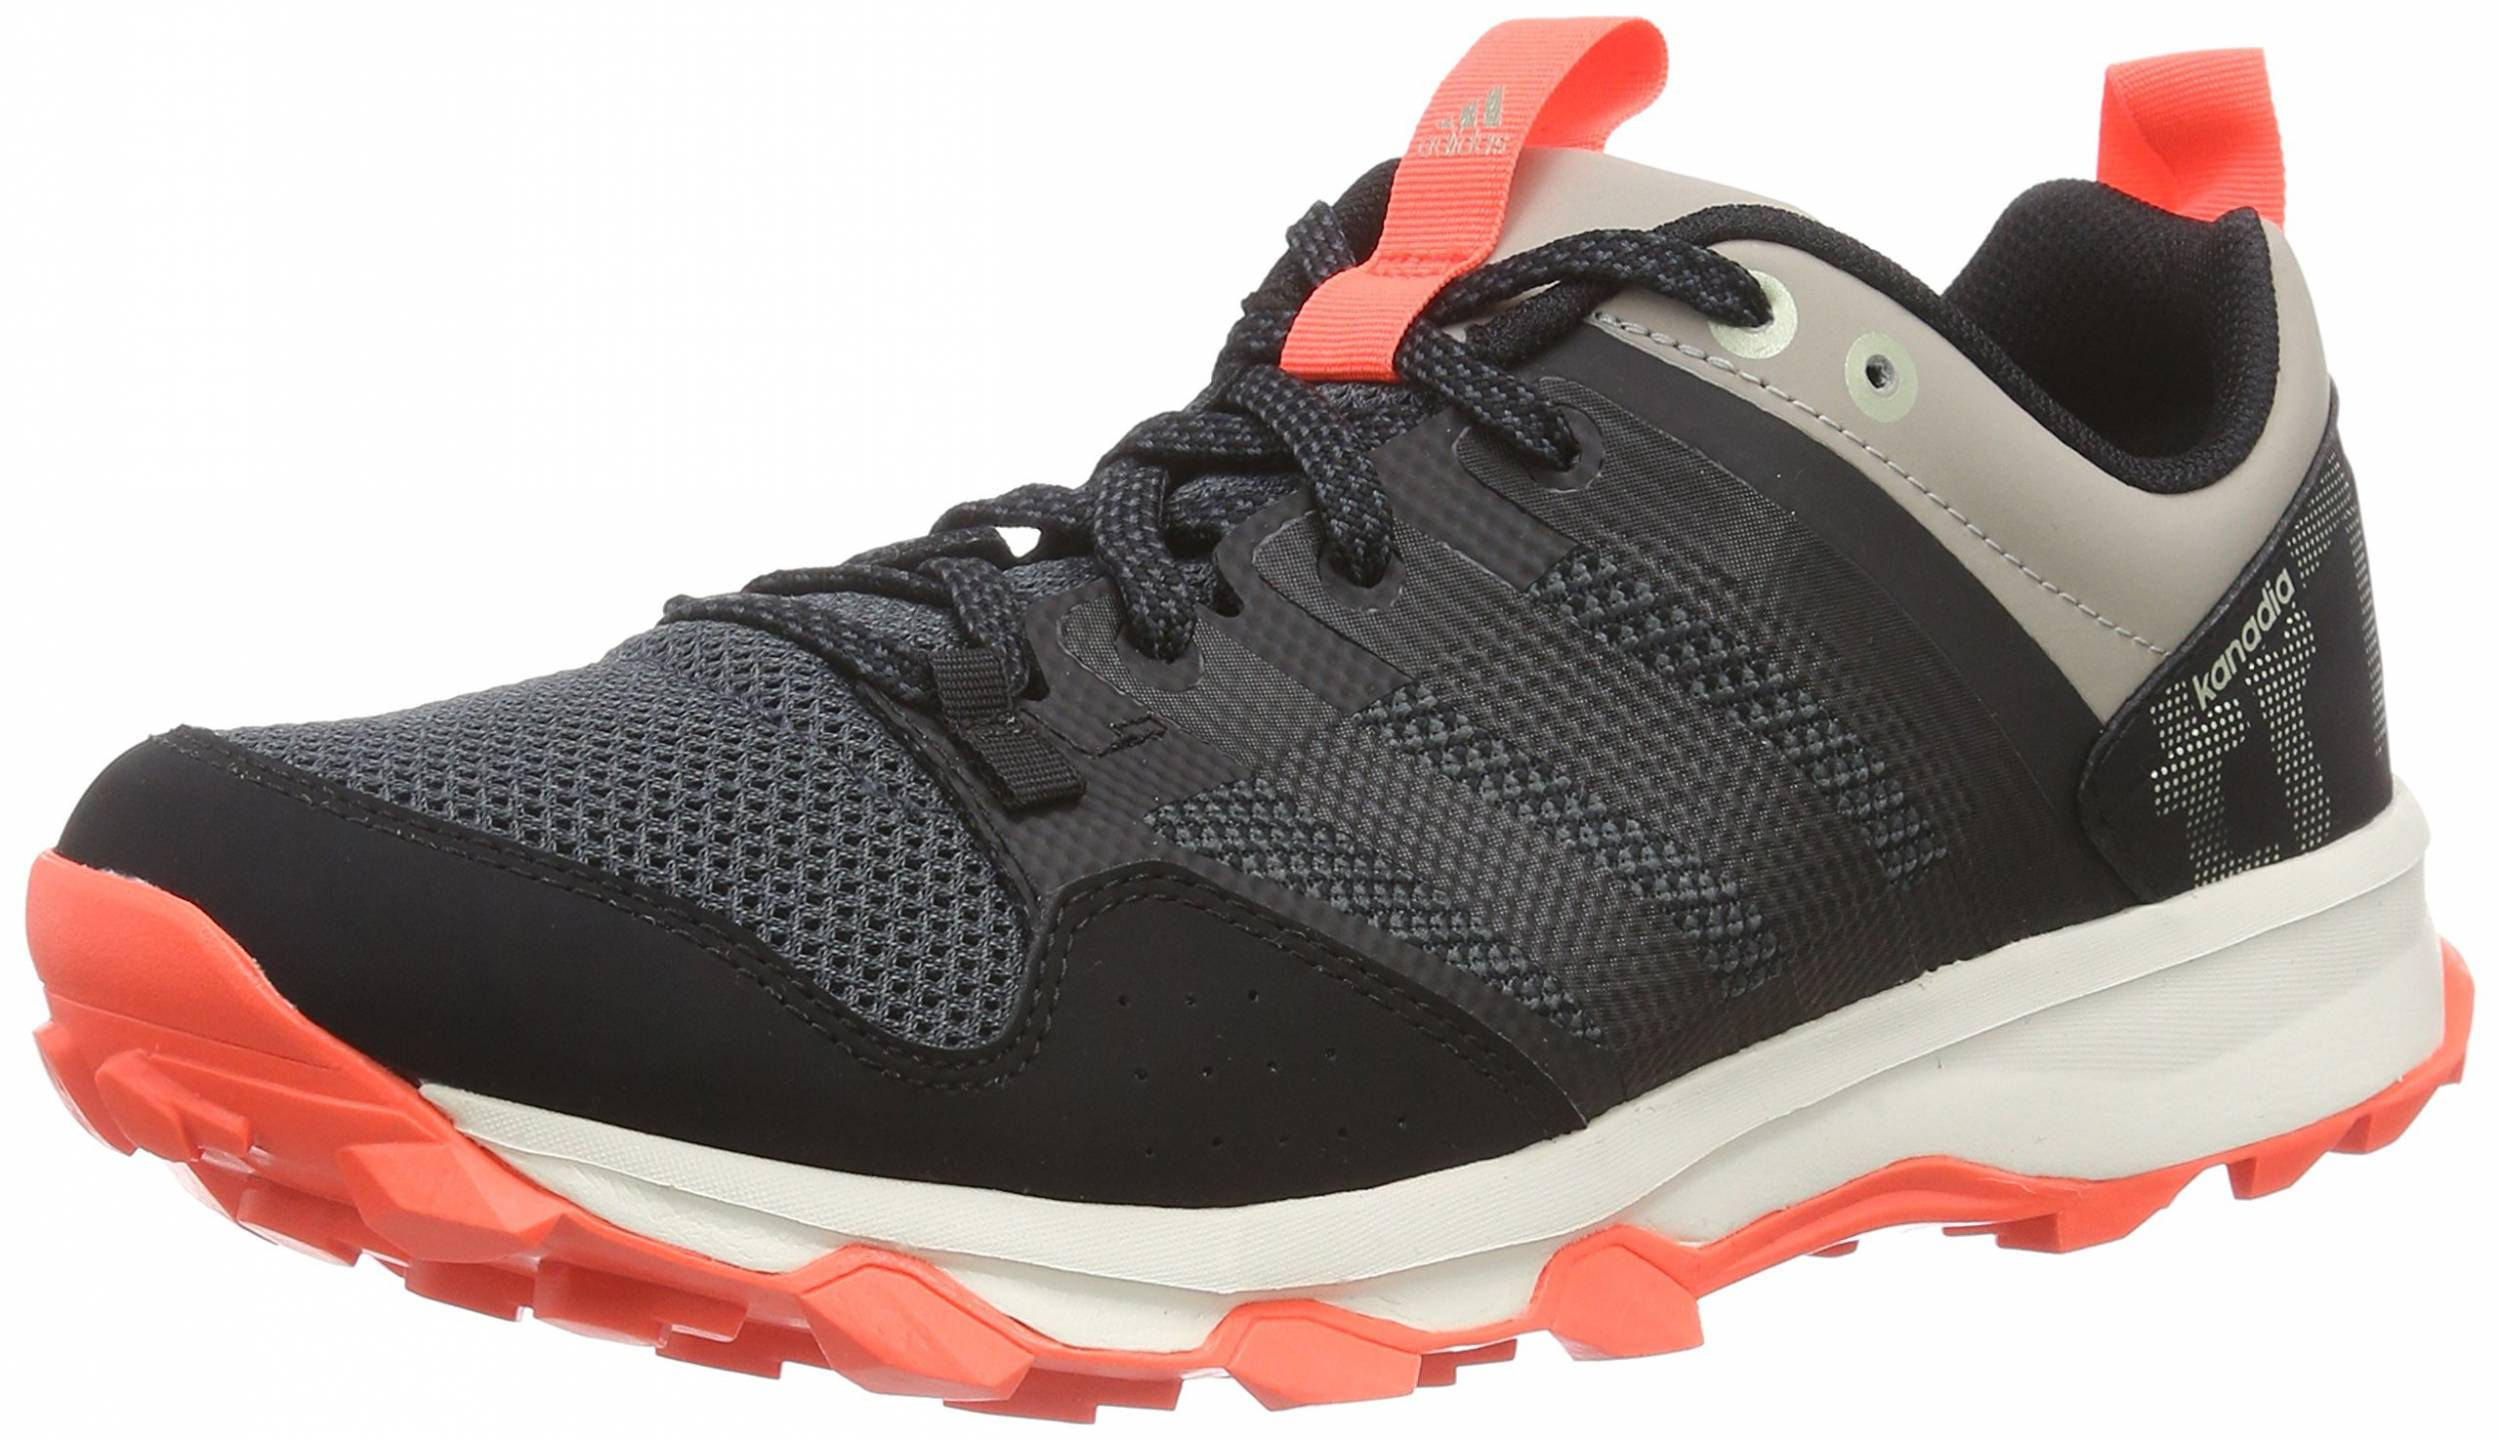 colorante Adelaida disparar  Adidas Kanadia 7 - Deals ($60), Facts, Reviews (2021) | RunRepeat